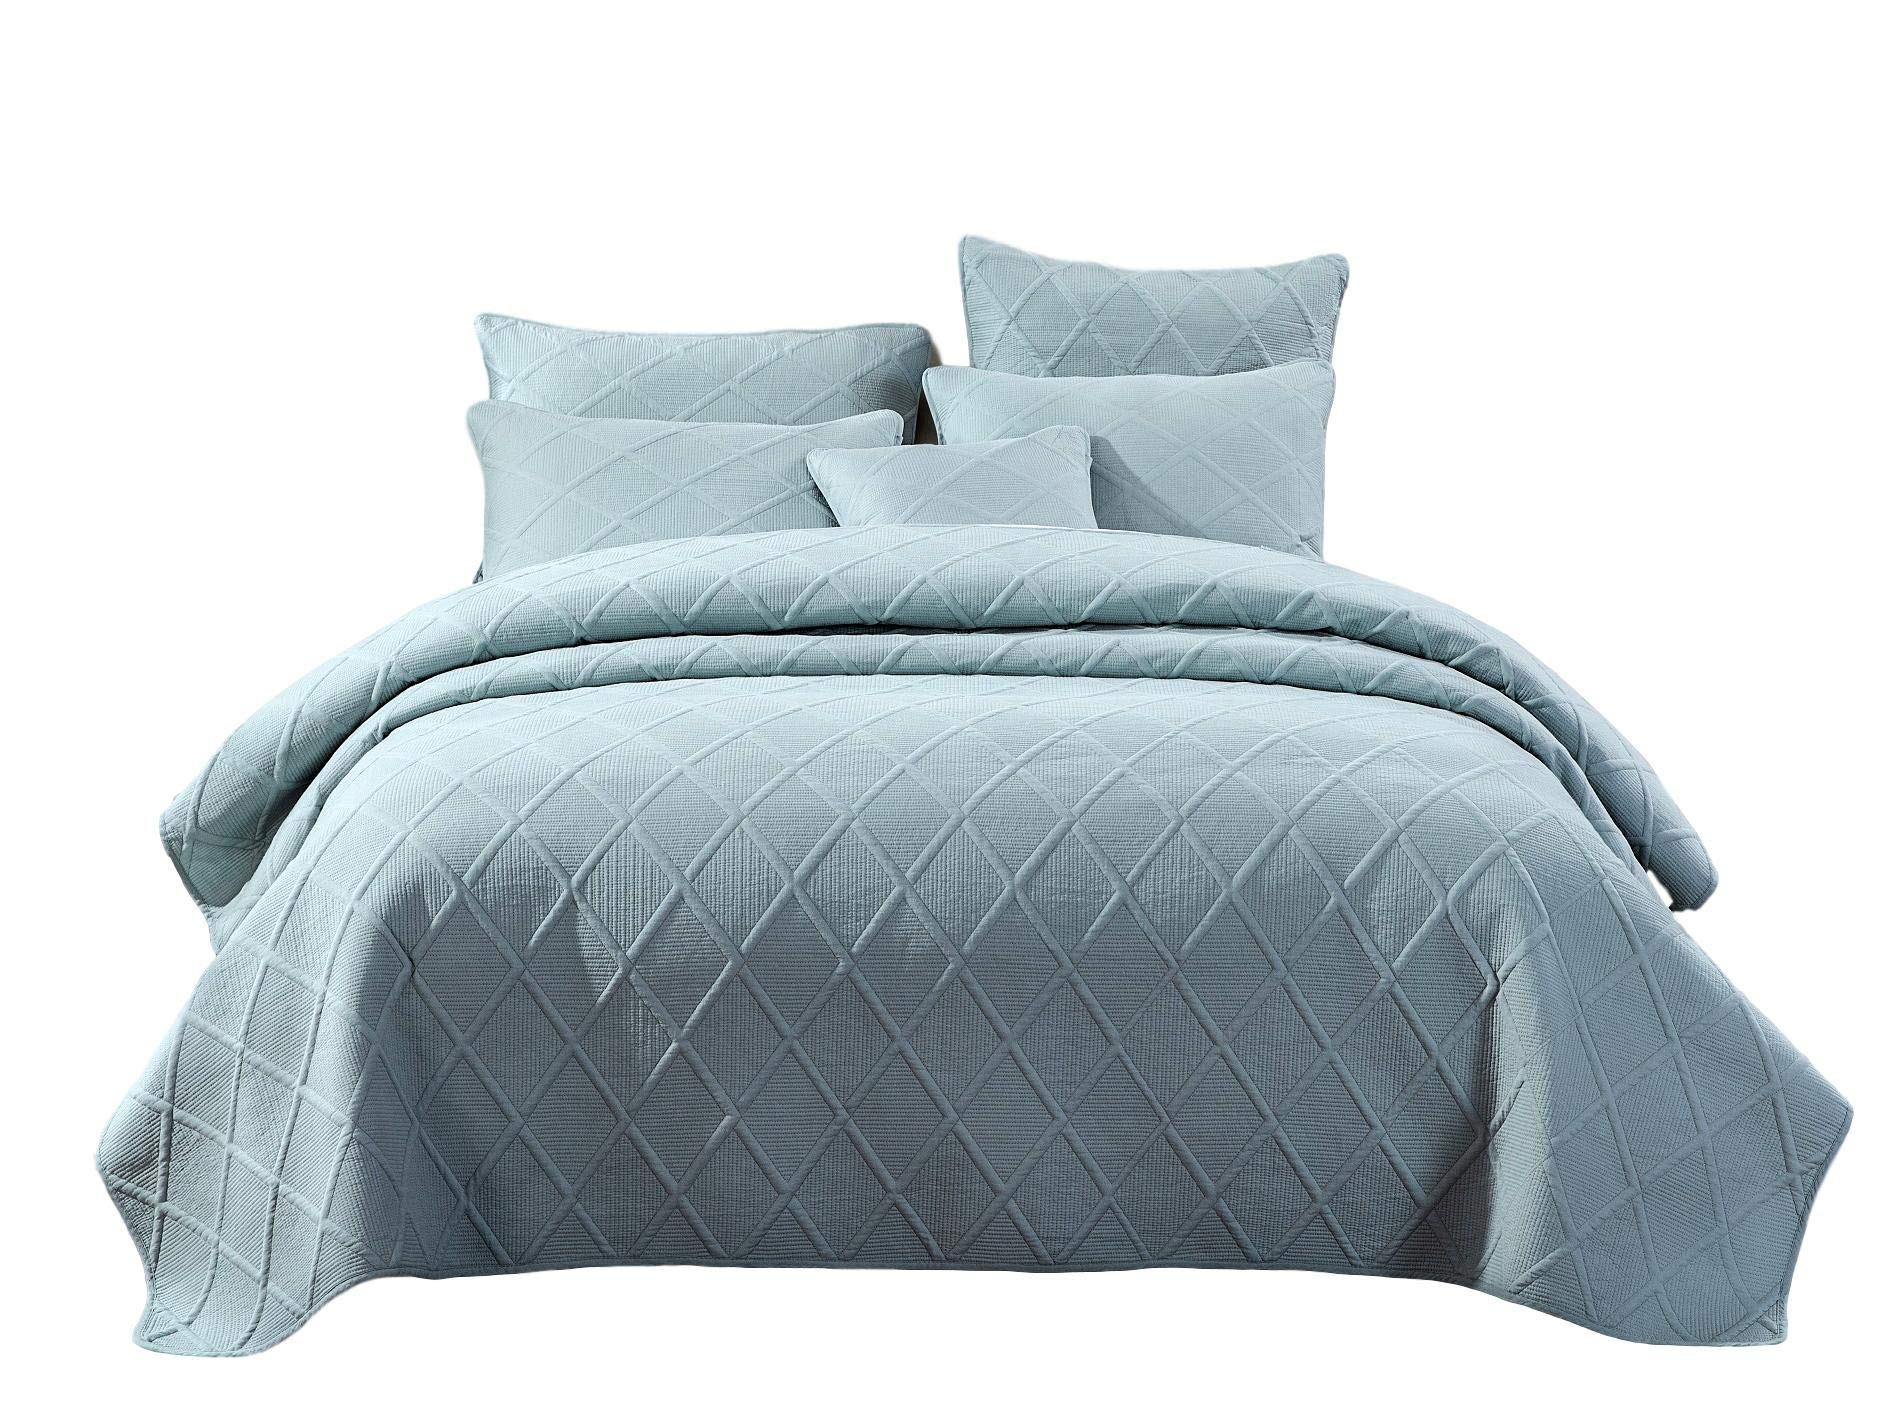 Tache Solid Seafoam Blue Green Soothing Pastel Soft Cotton Diamond Stitch Matelasse Pattern Lightweight Quilted Bedspread 2 Piece Set, Twin by Tache Home Fashion